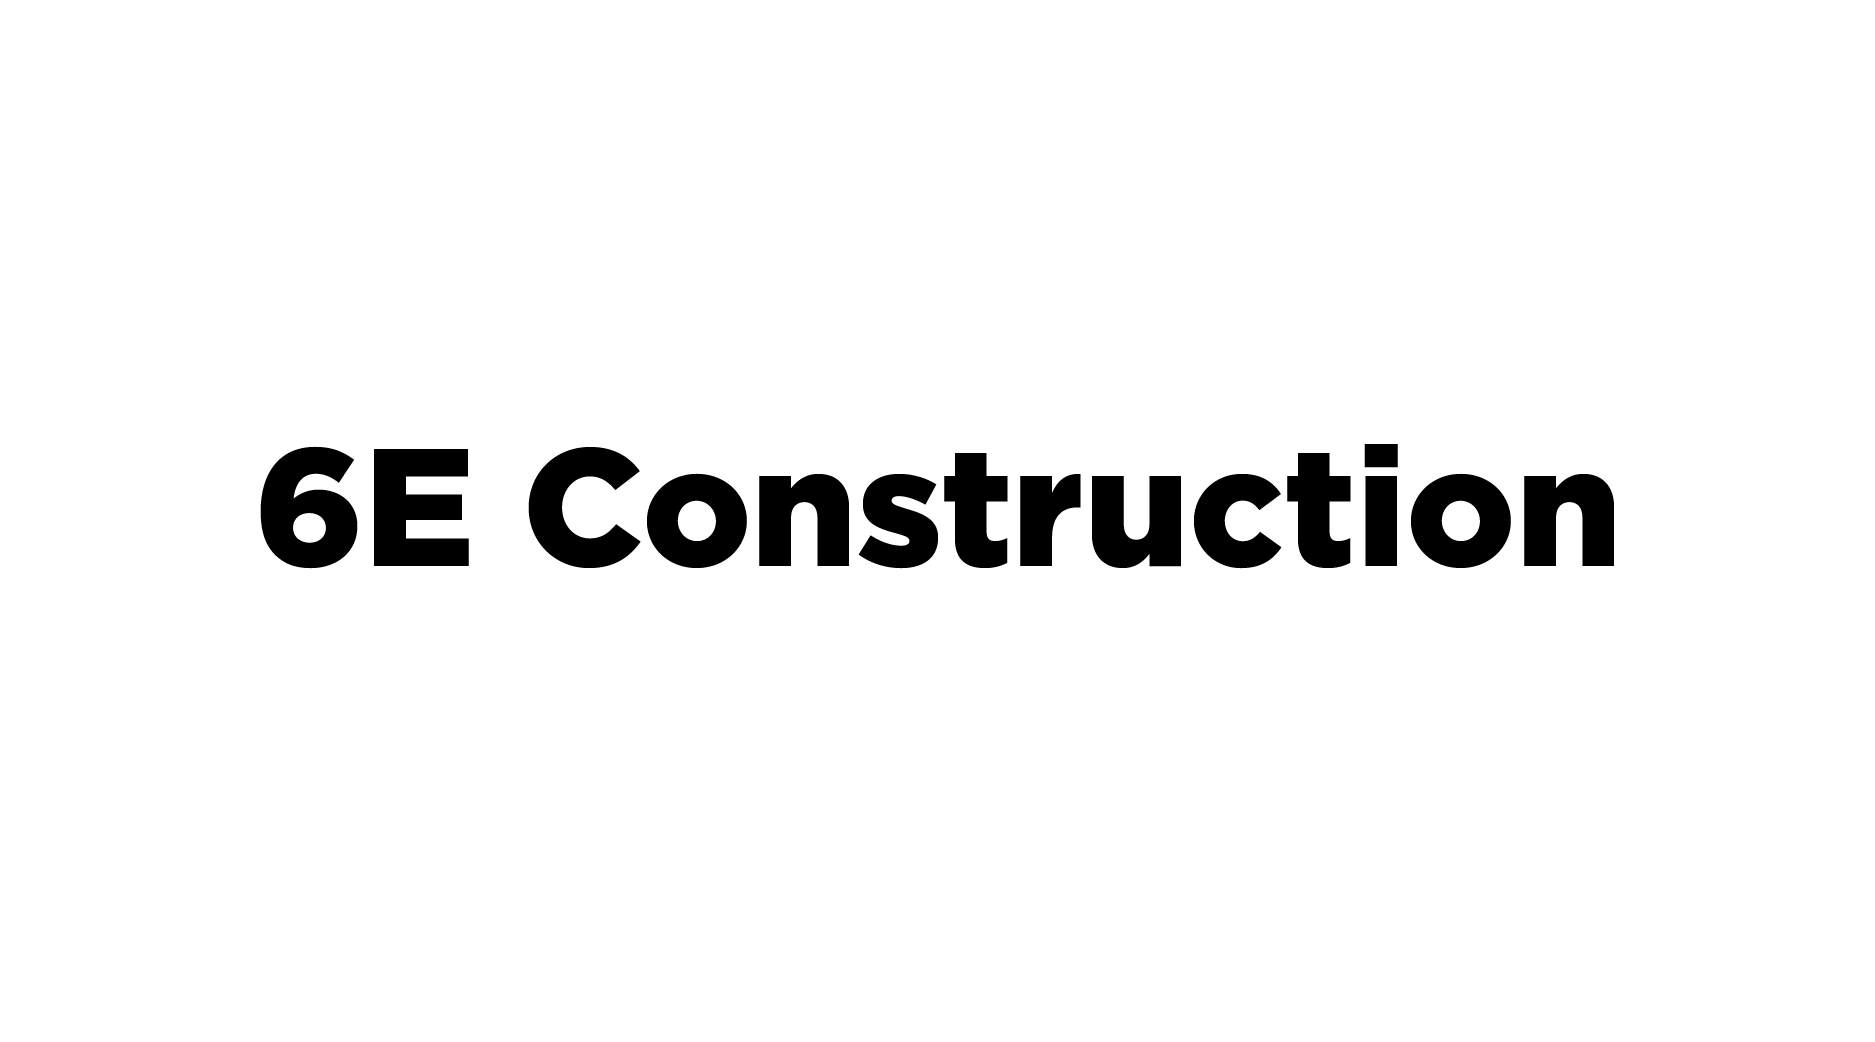 asset-logo_6e-construction.png